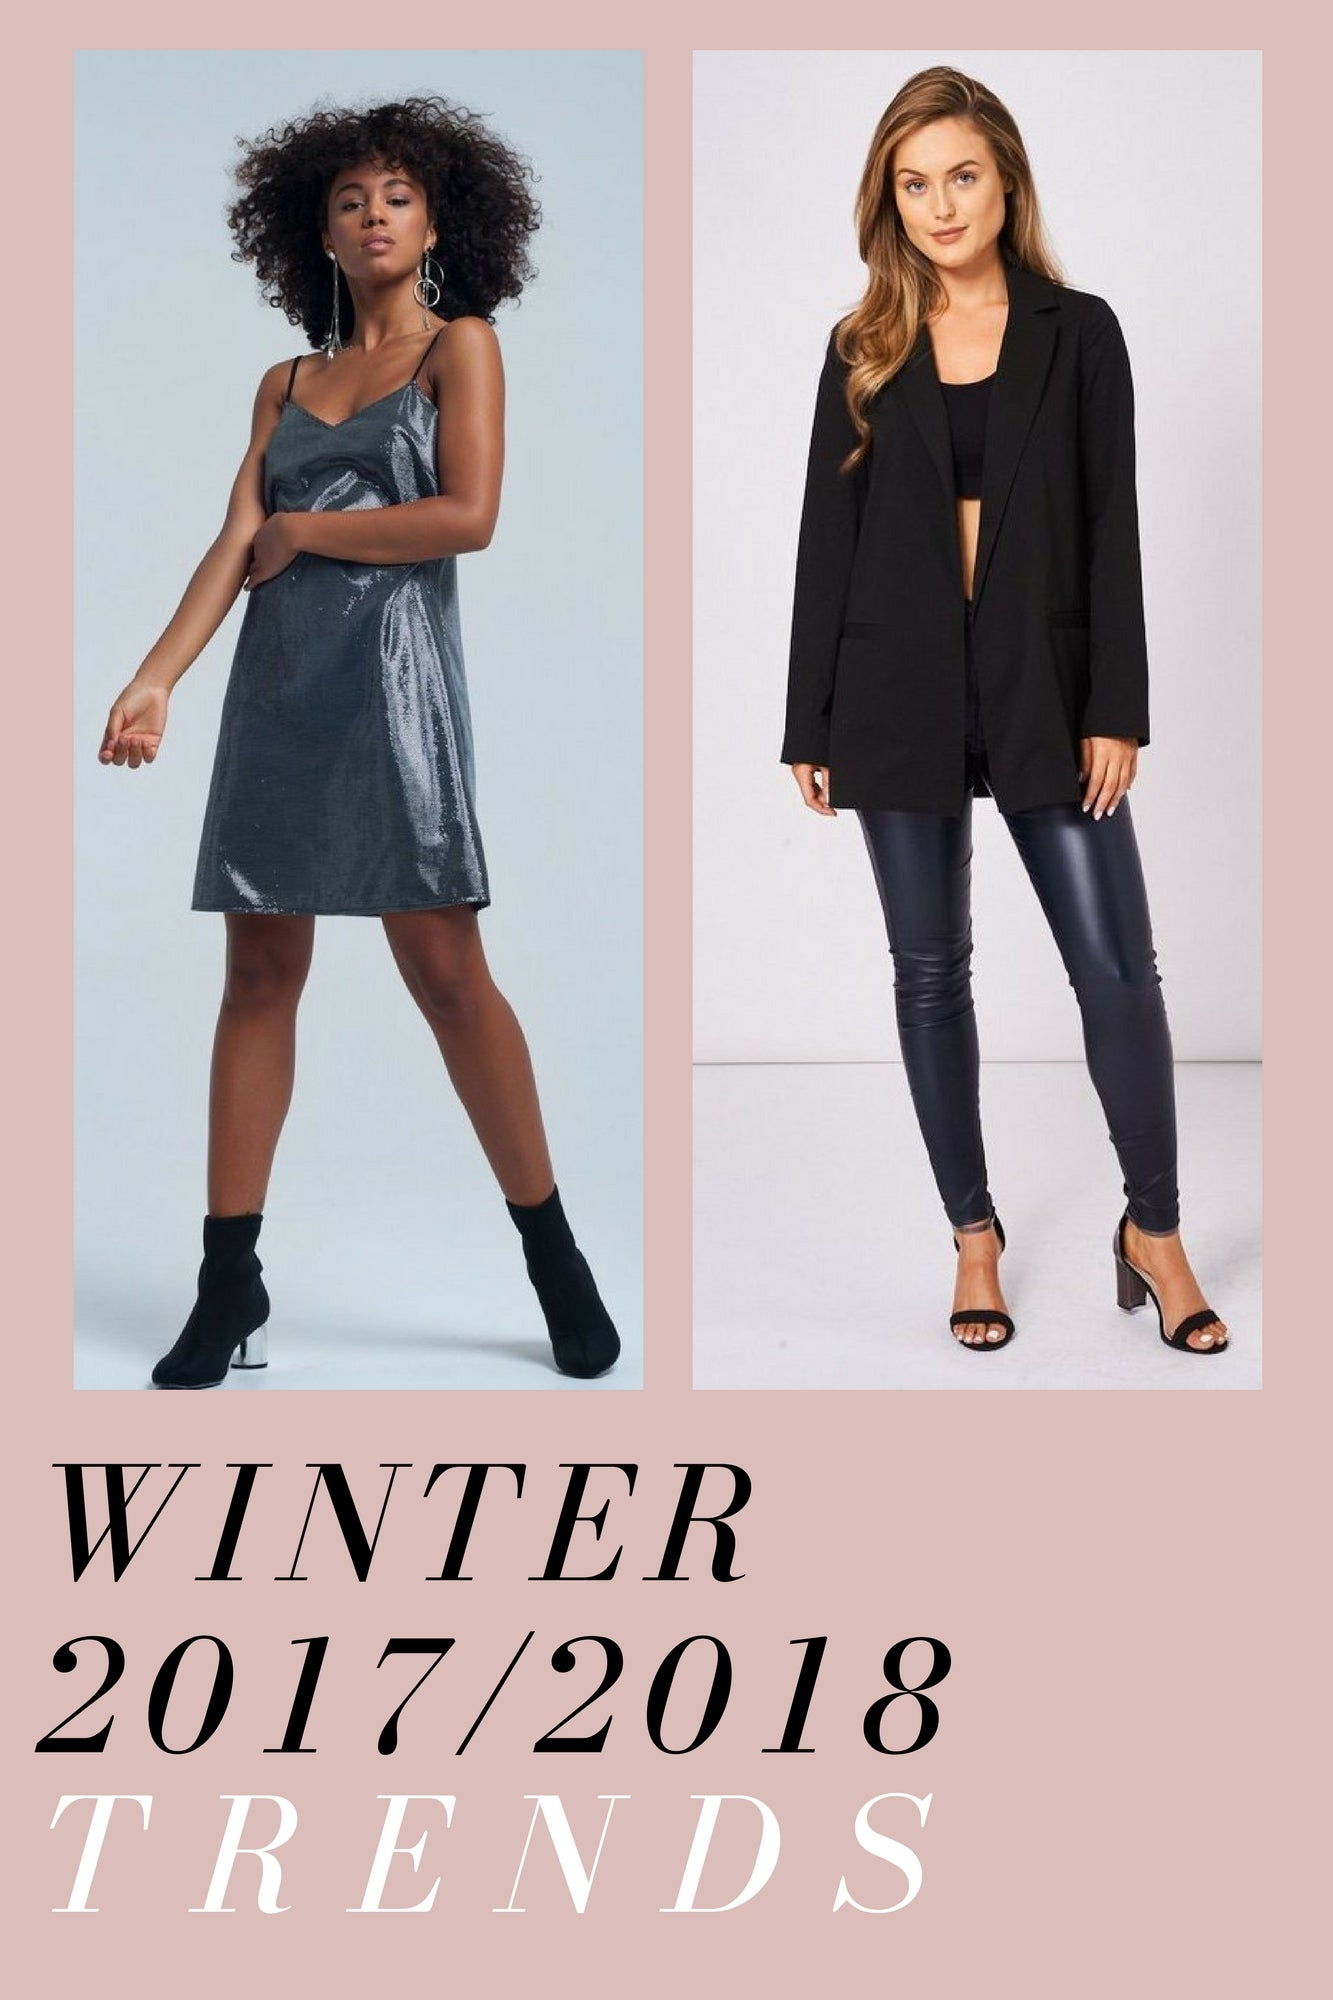 Winter 2017 2018 Trends by Love Me Trender